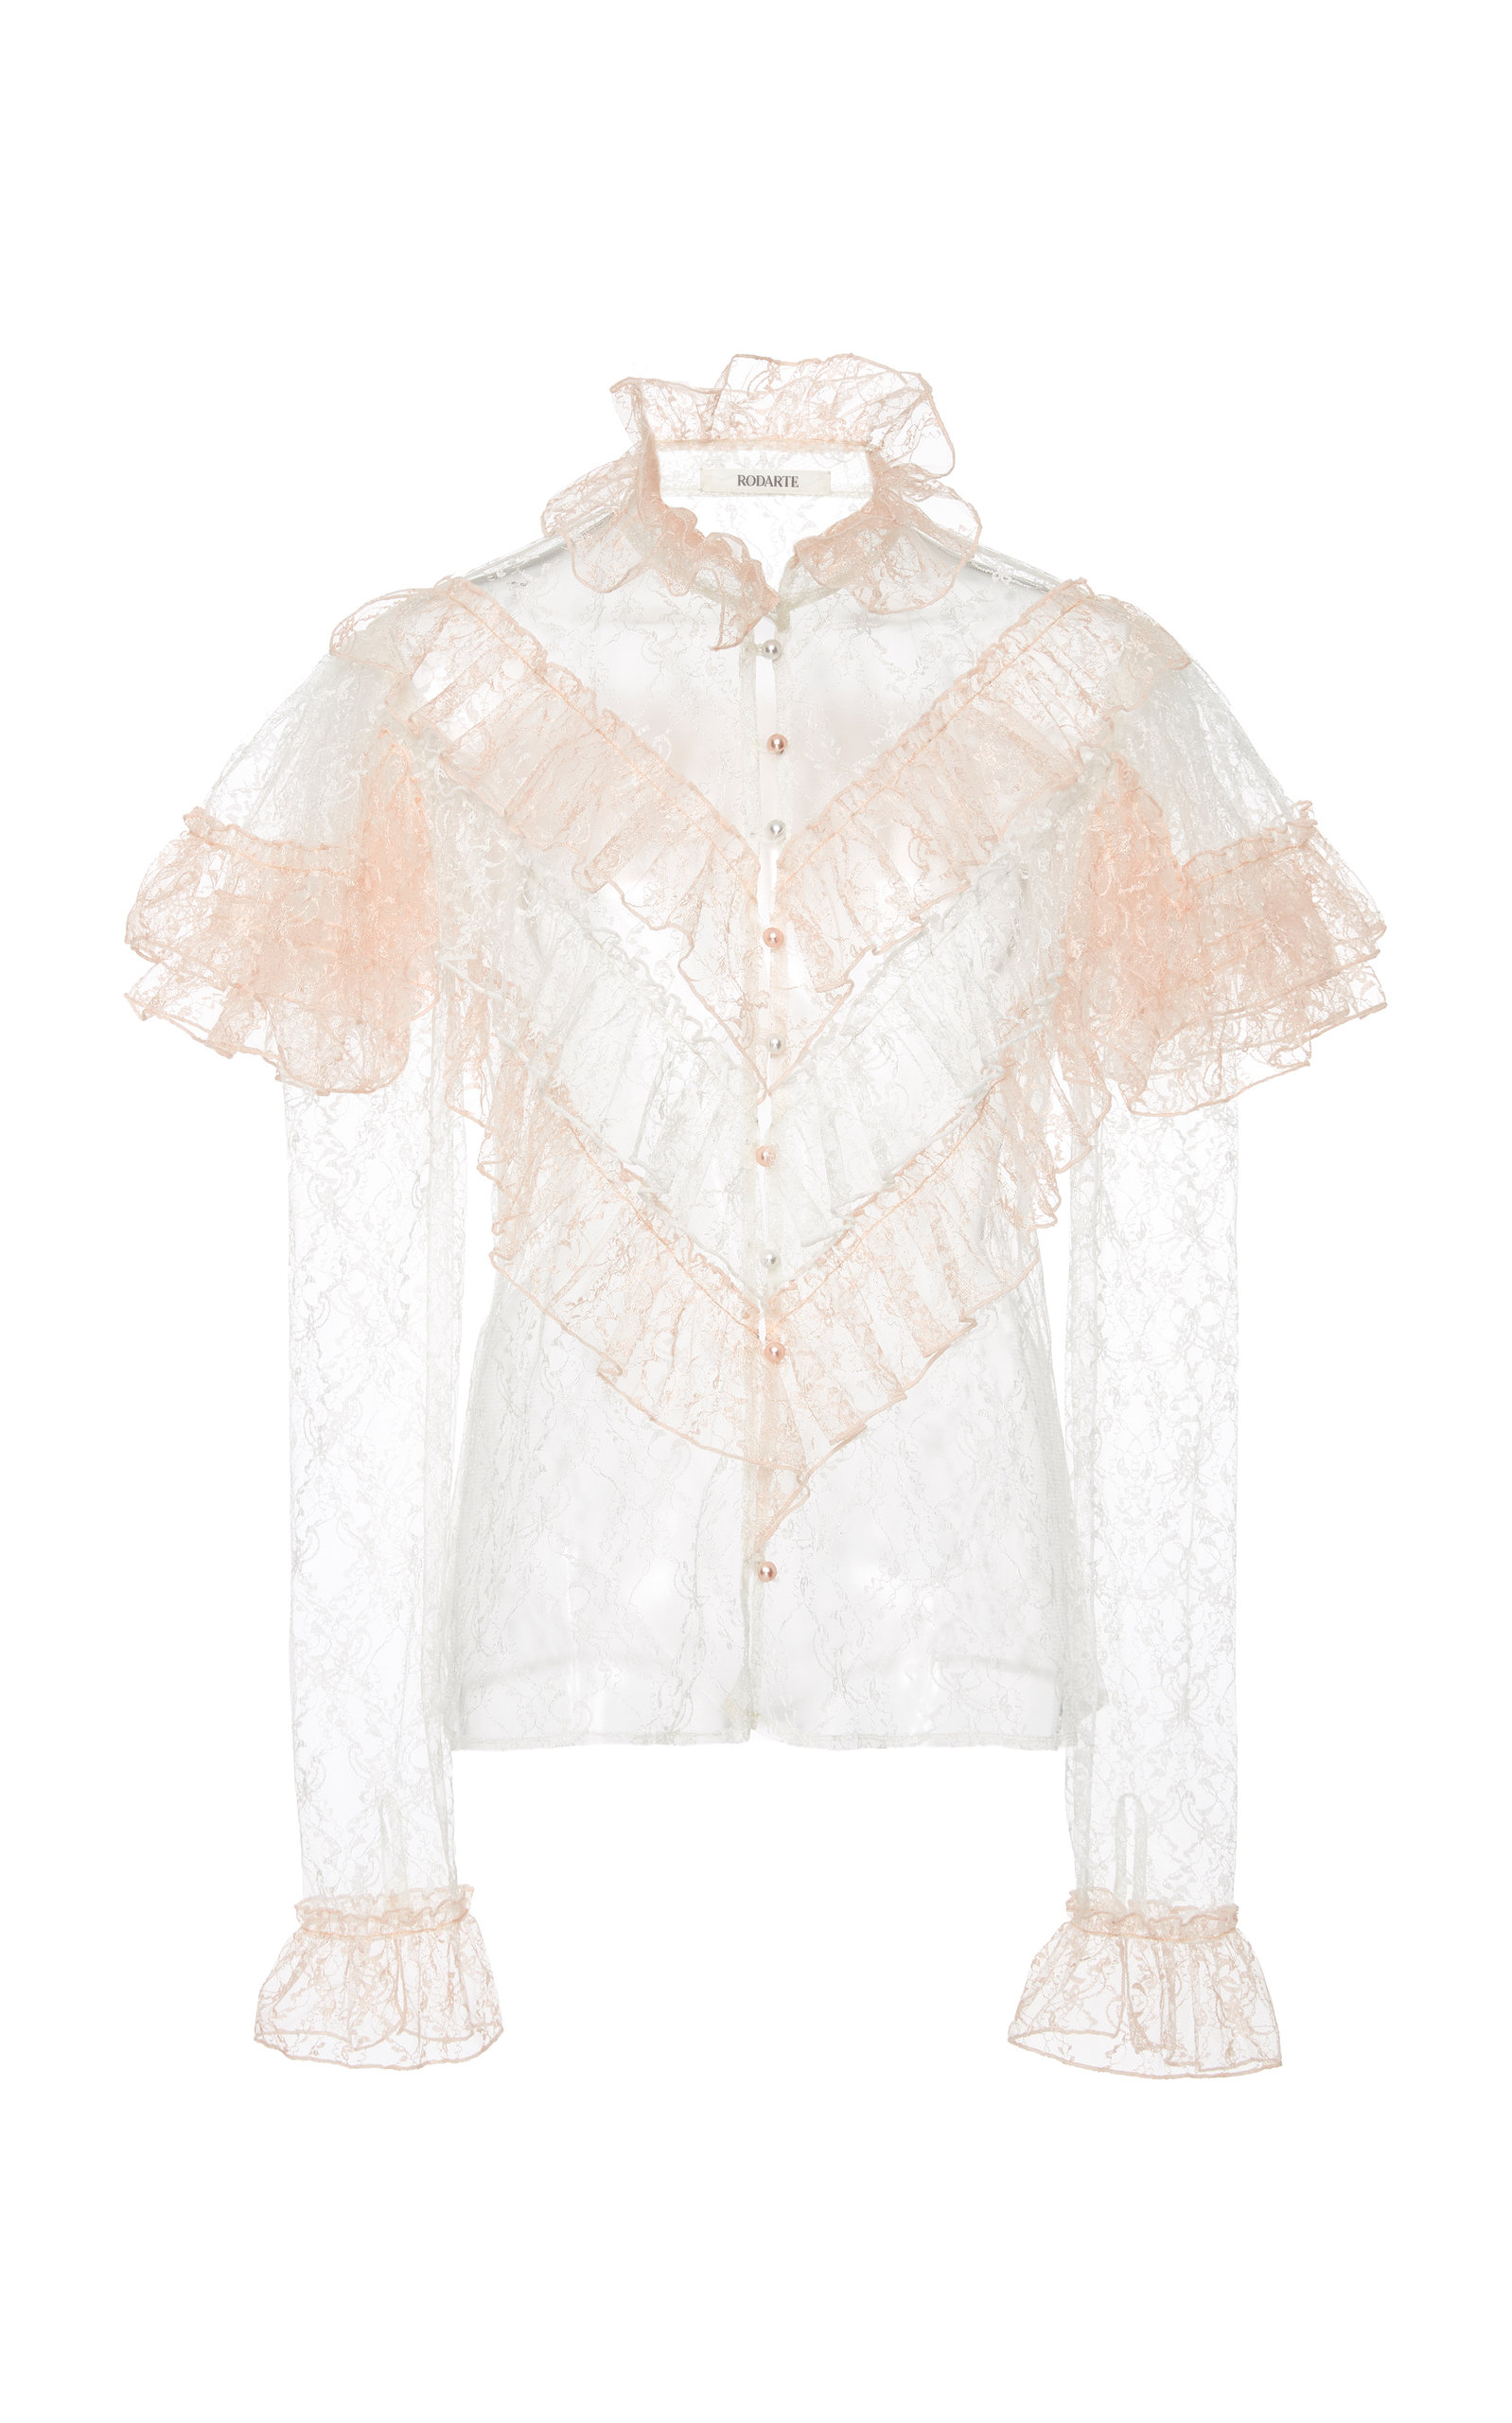 Discount Brand New Unisex Shop Cold-Shoulder Ruffled Tulle Blouse Rodarte Discount With Mastercard GzzvfNlGPd